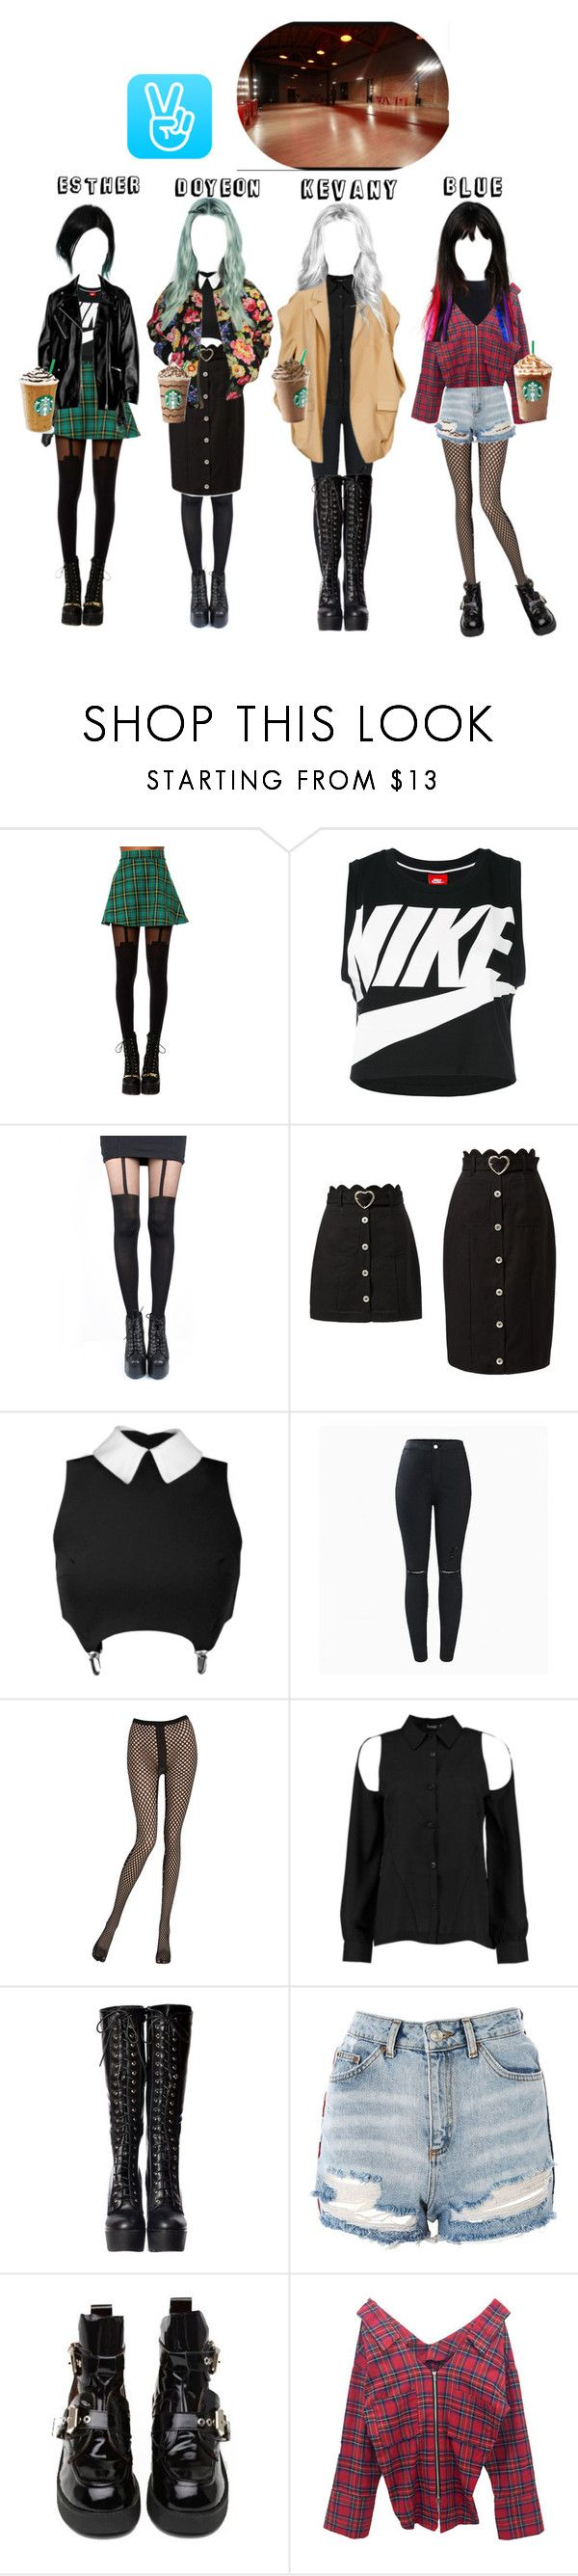 """""""V live : Q&A"""" by officialdlxx ❤ liked on Polyvore featuring Foot Traffic, NIKE, Jean-Paul Gaultier, Pretty Polly, Emilio Cavallini, Boohoo, Topshop, Jeffrey Campbell and Edward Crutchley"""